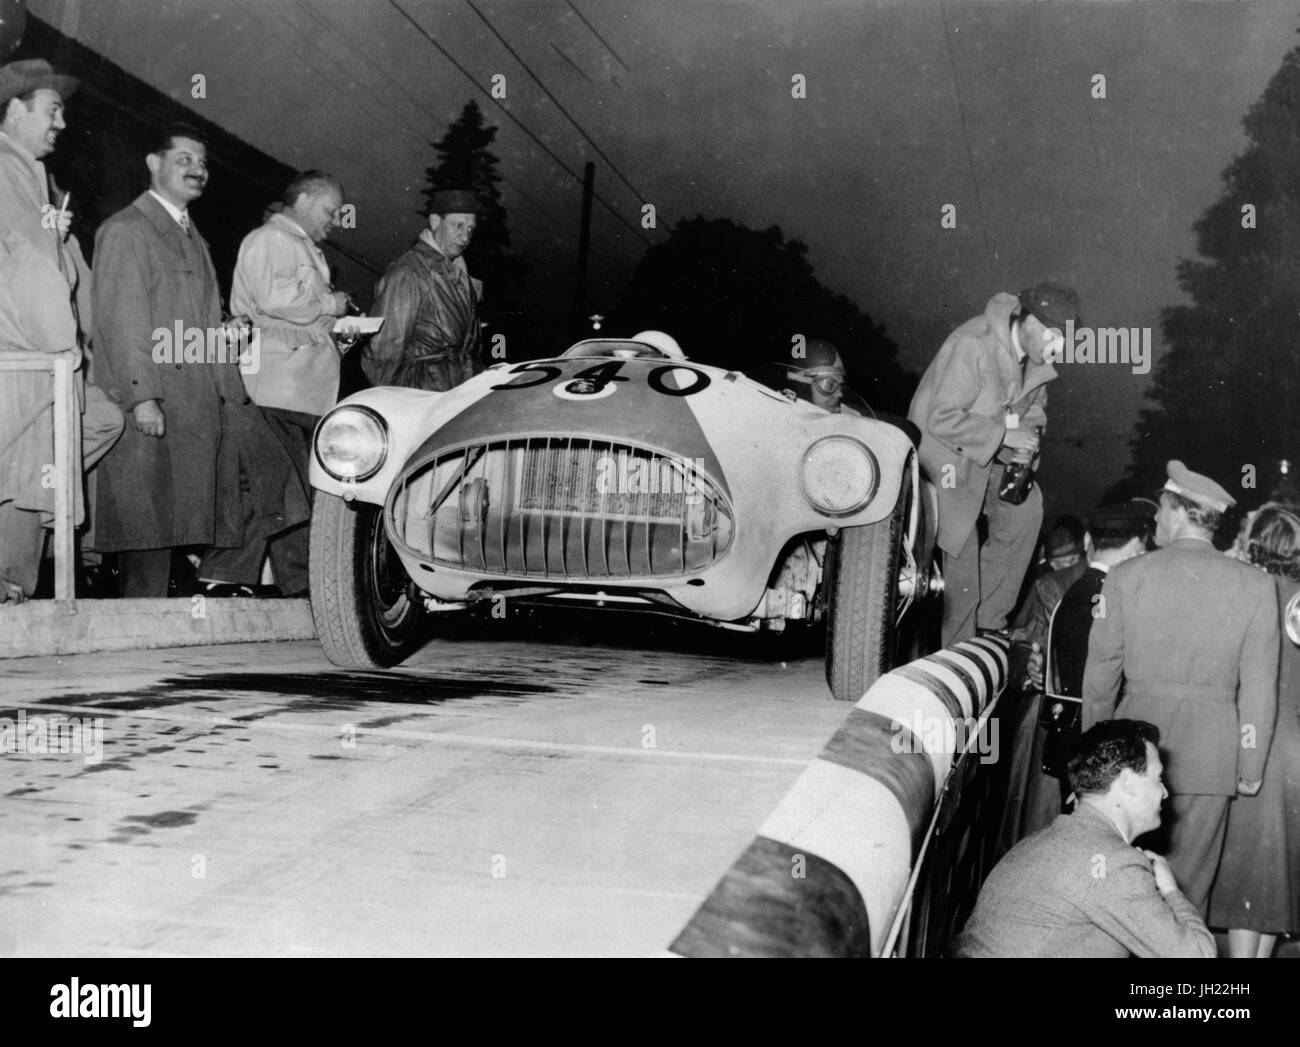 Nash Healey at 1953 Mille Miglia - Stock Image